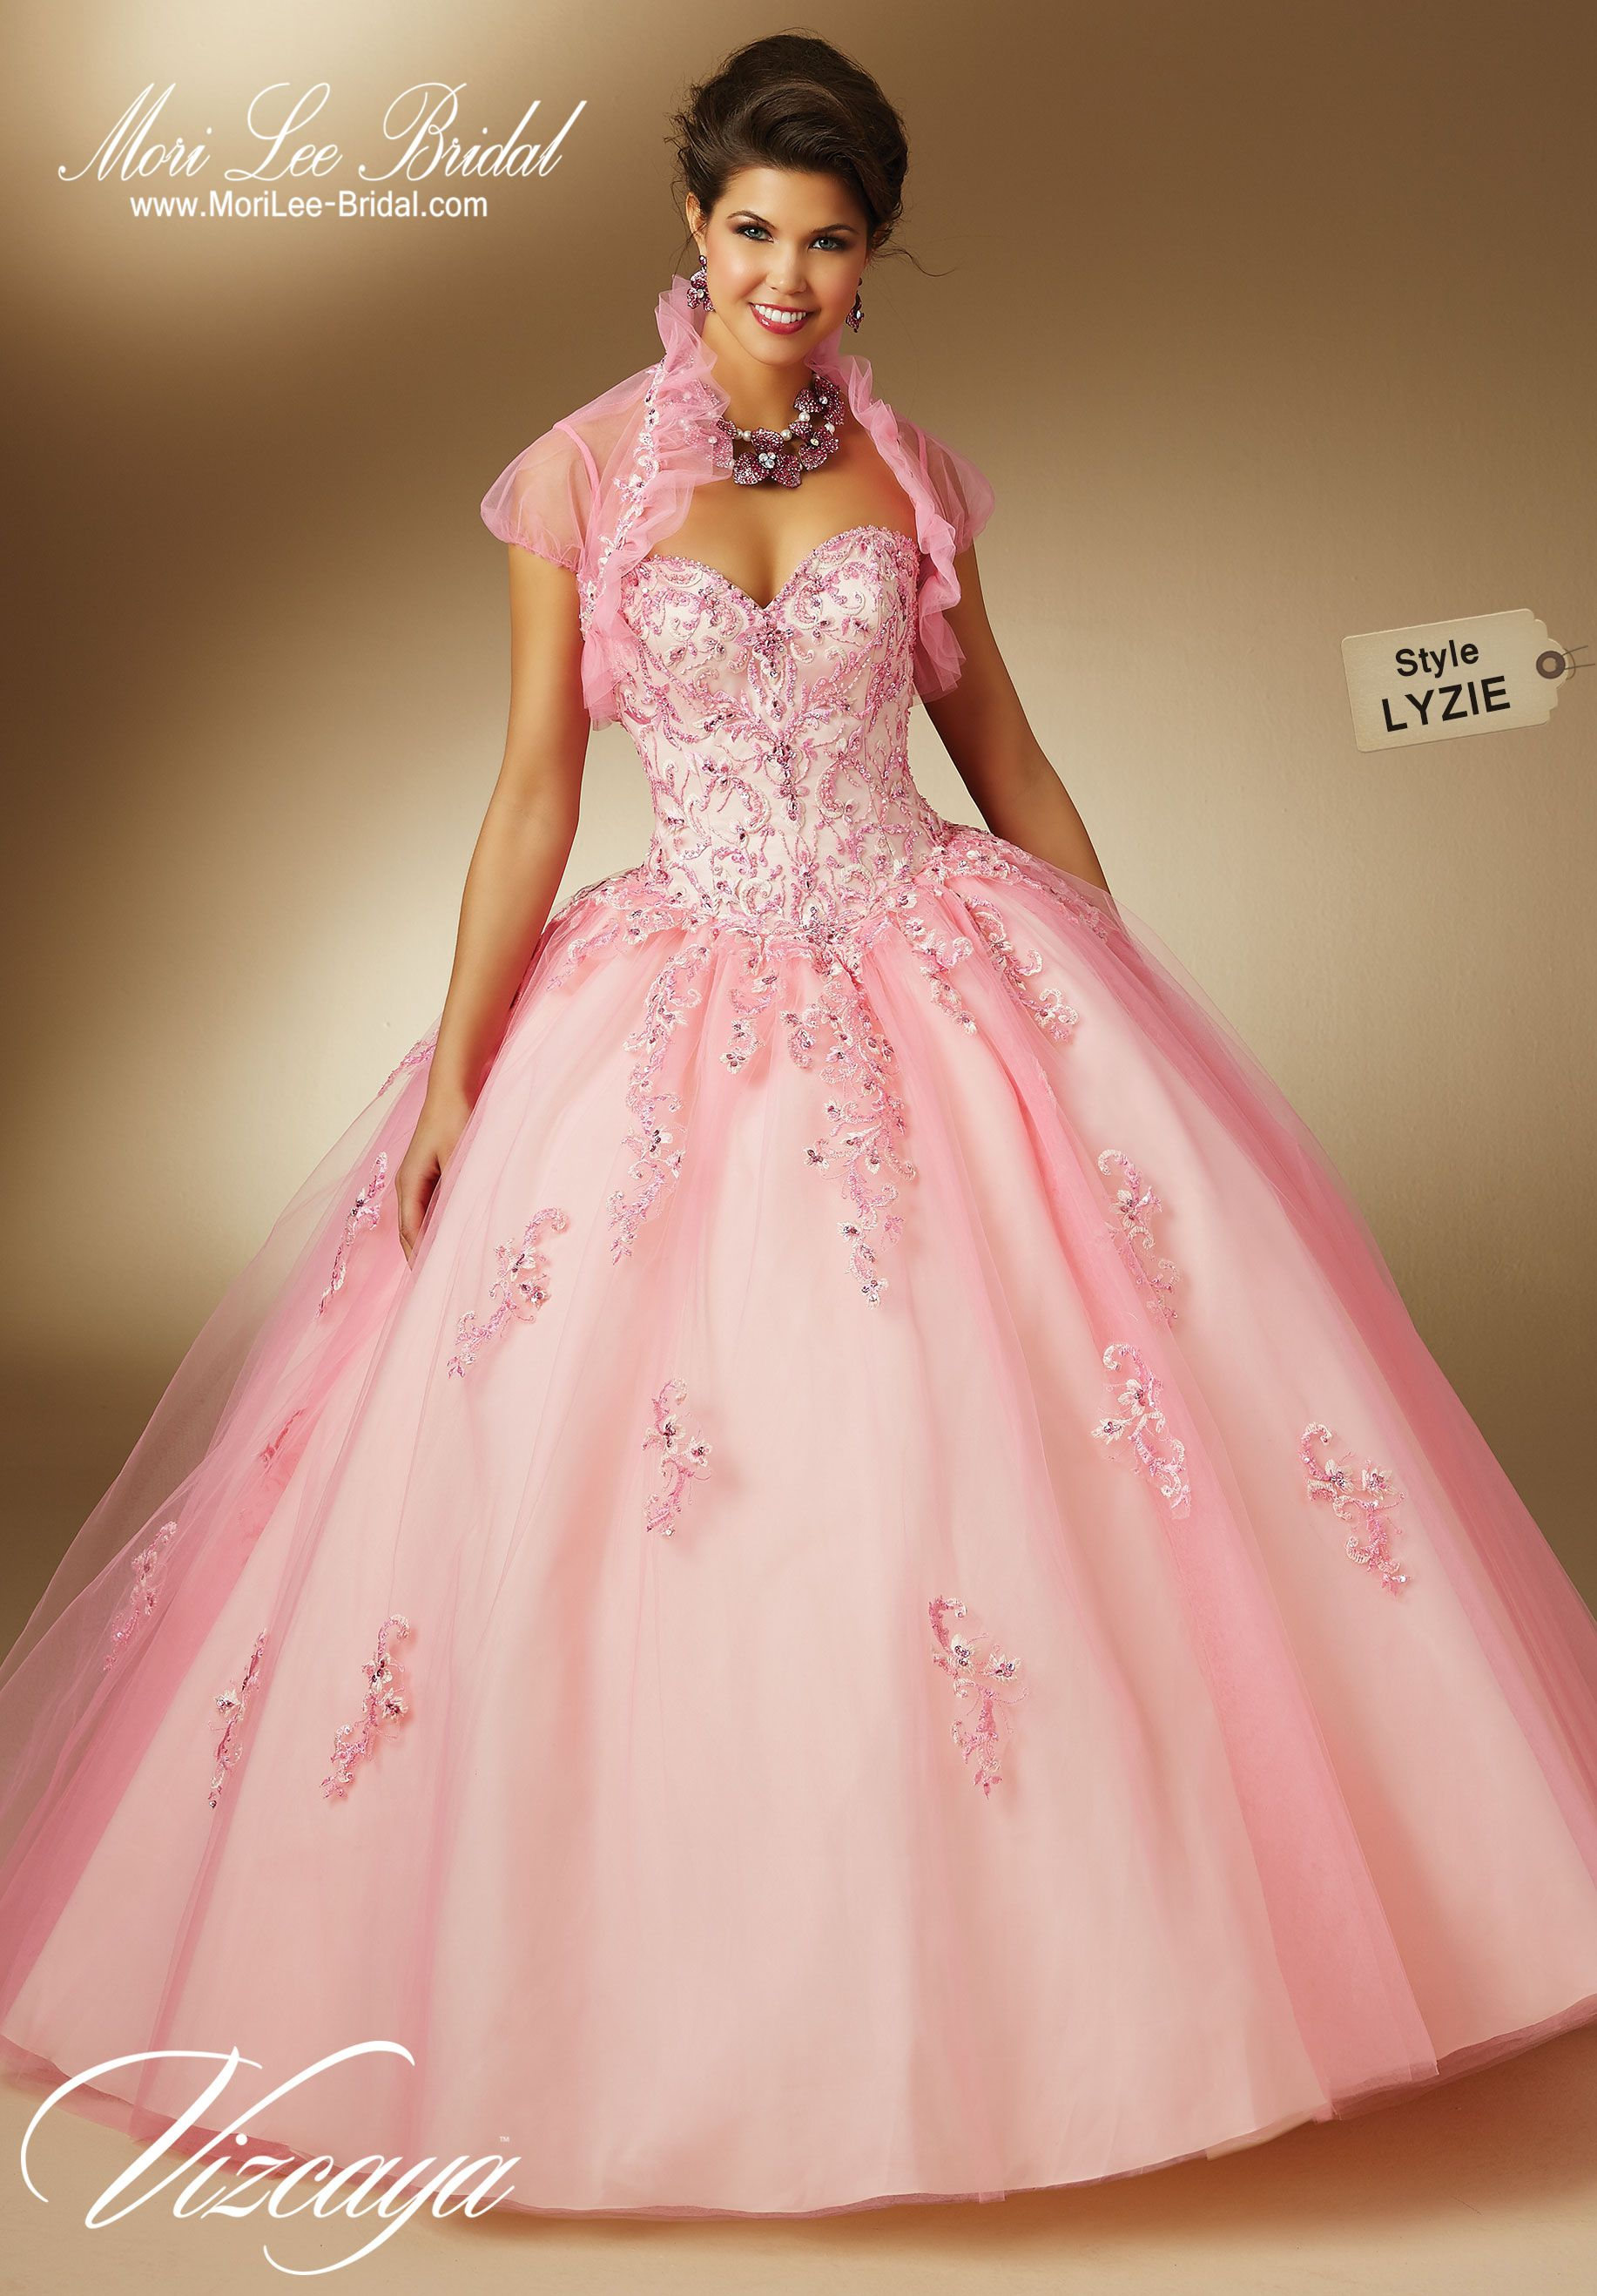 Style LYZIE TWO-TONE EMBROIDERY AND BEADING ON TULLE. Matching ...